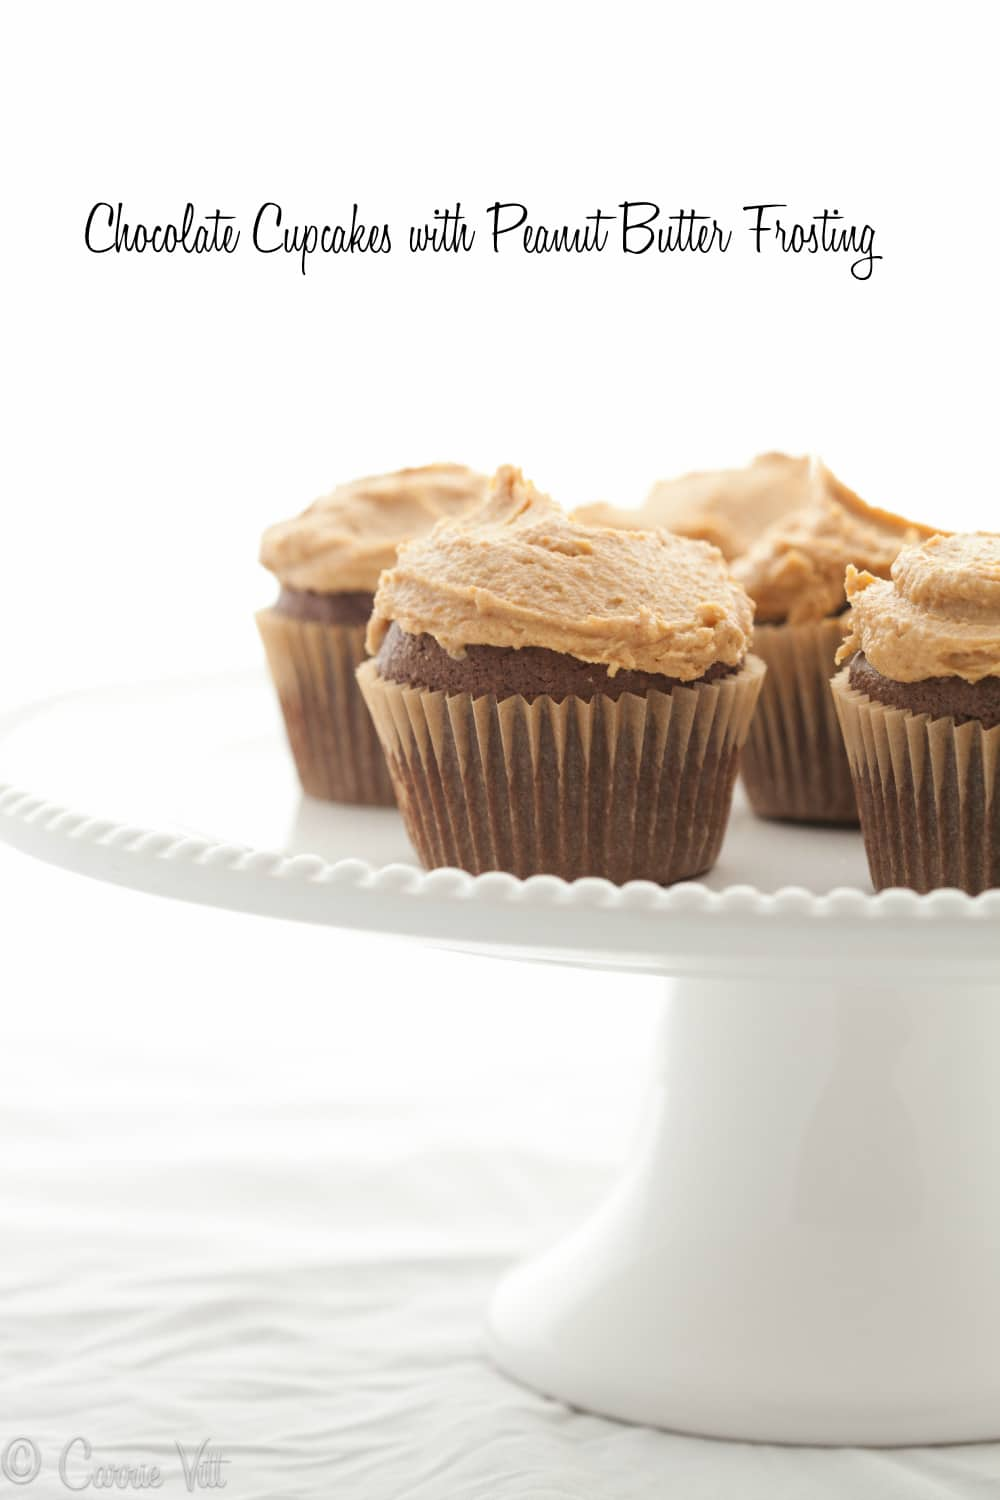 Peanut-Butter And Chocolate Frosted Cupcakes Recipes — Dishmaps